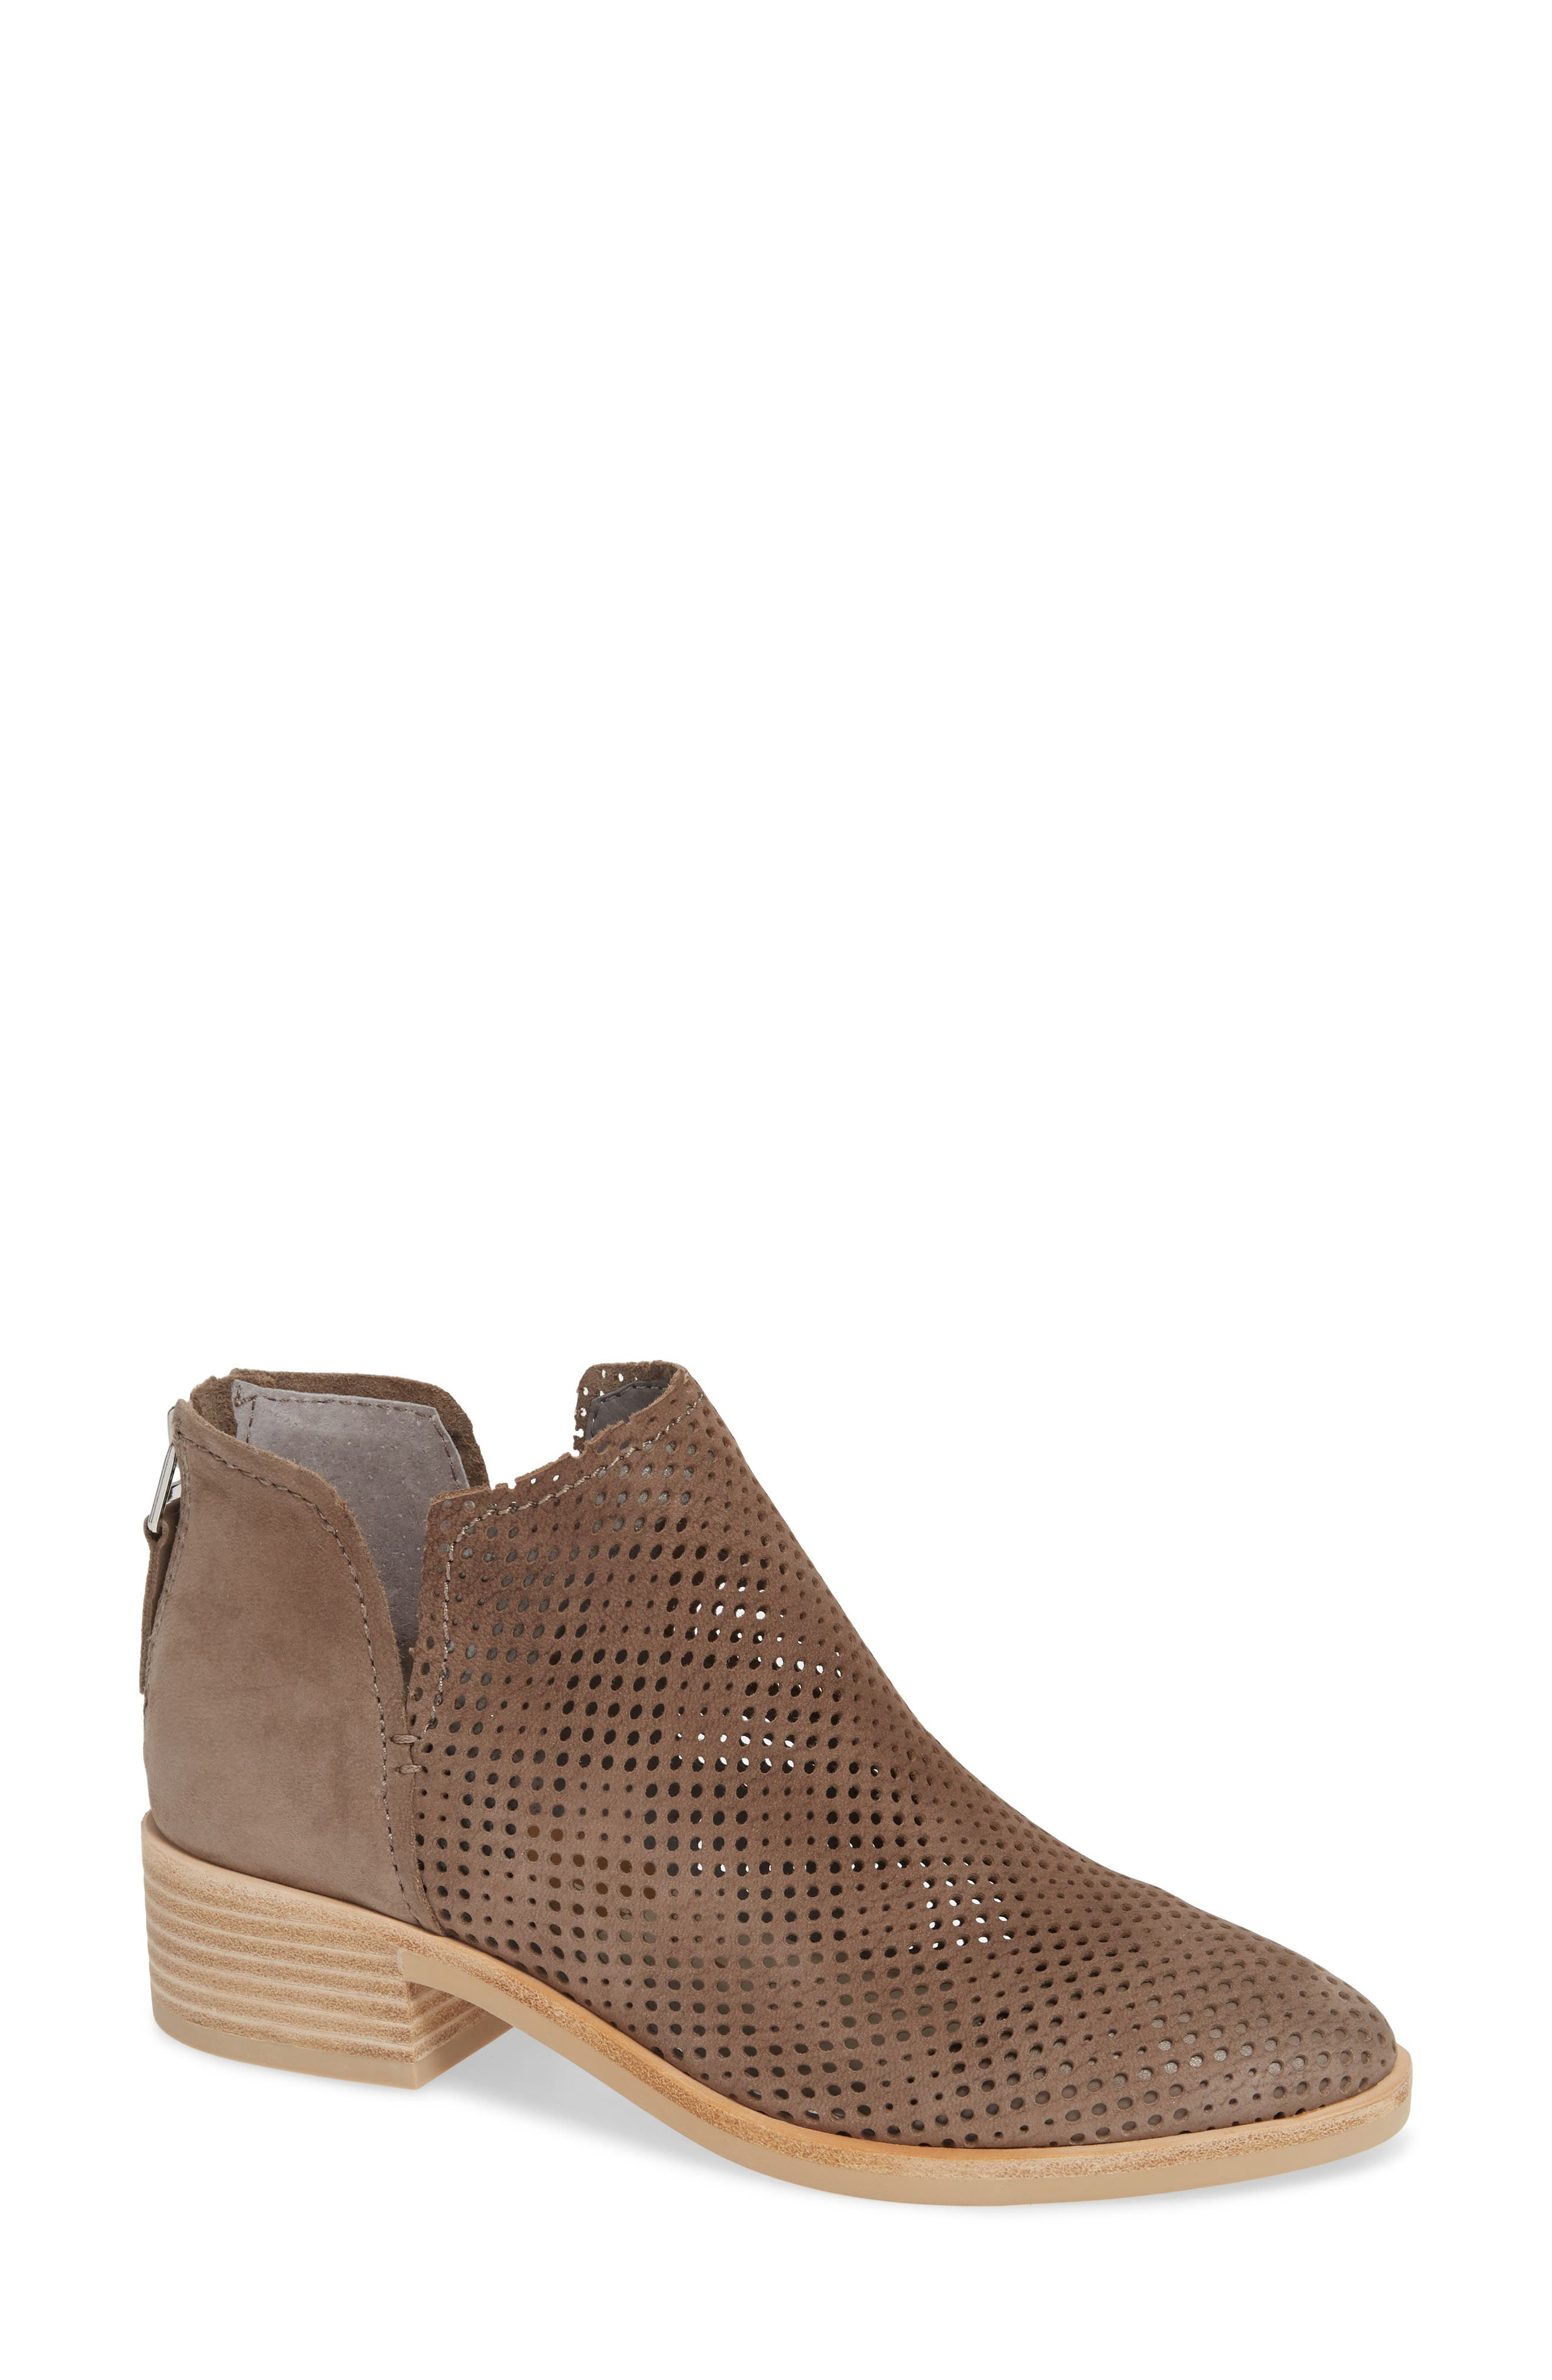 DOLCE VITA,                             Tauris Perforated Bootie,                             Main thumbnail 1, color,                             SMOKE